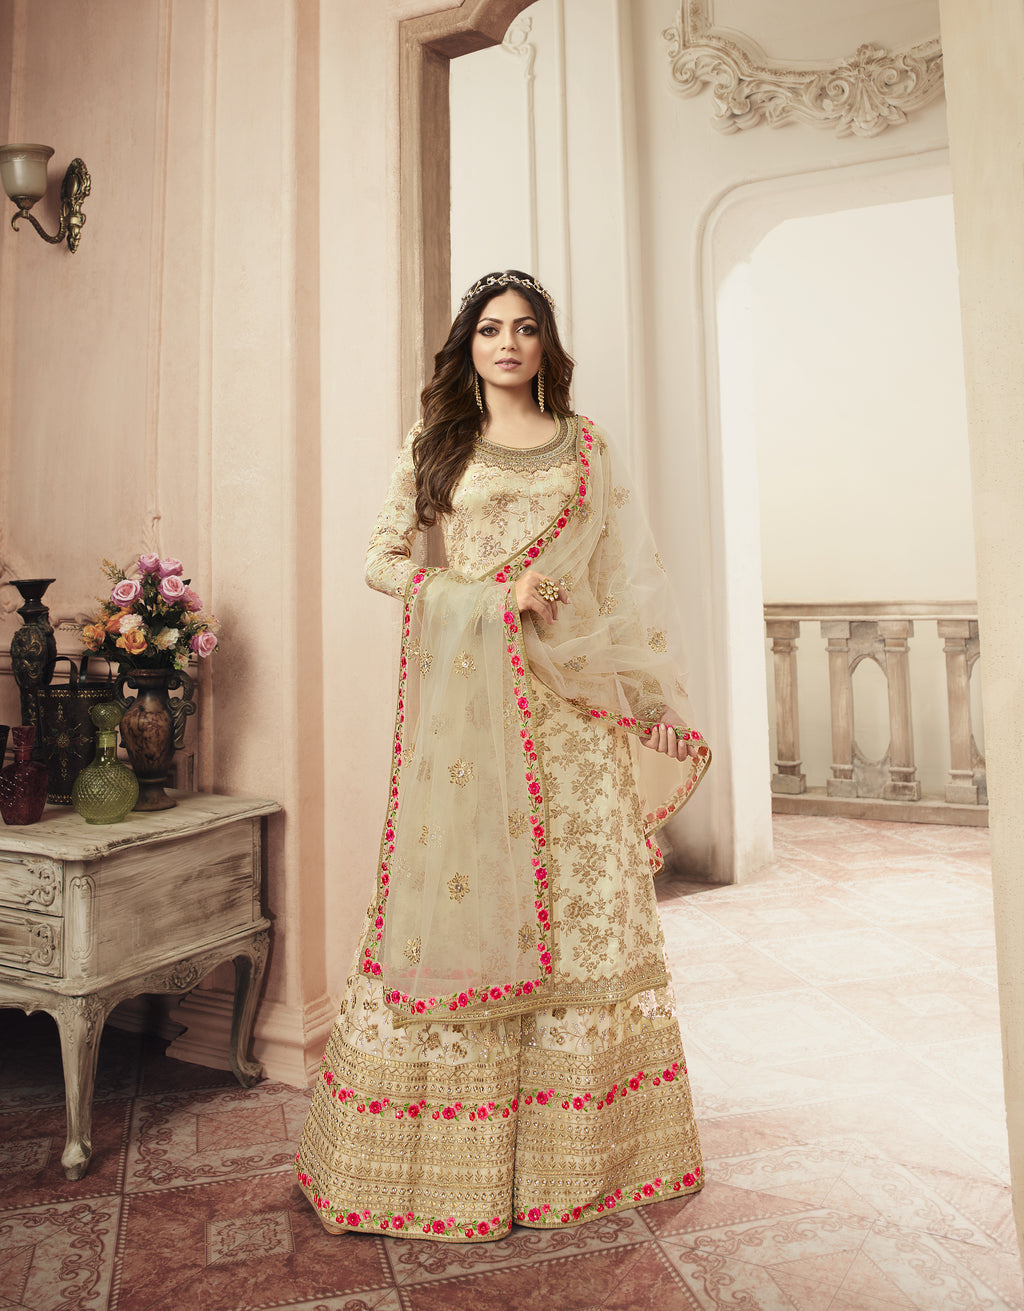 Drashti Dhami Beige Jacquard Indian Wedding Suits Salwar Kameez